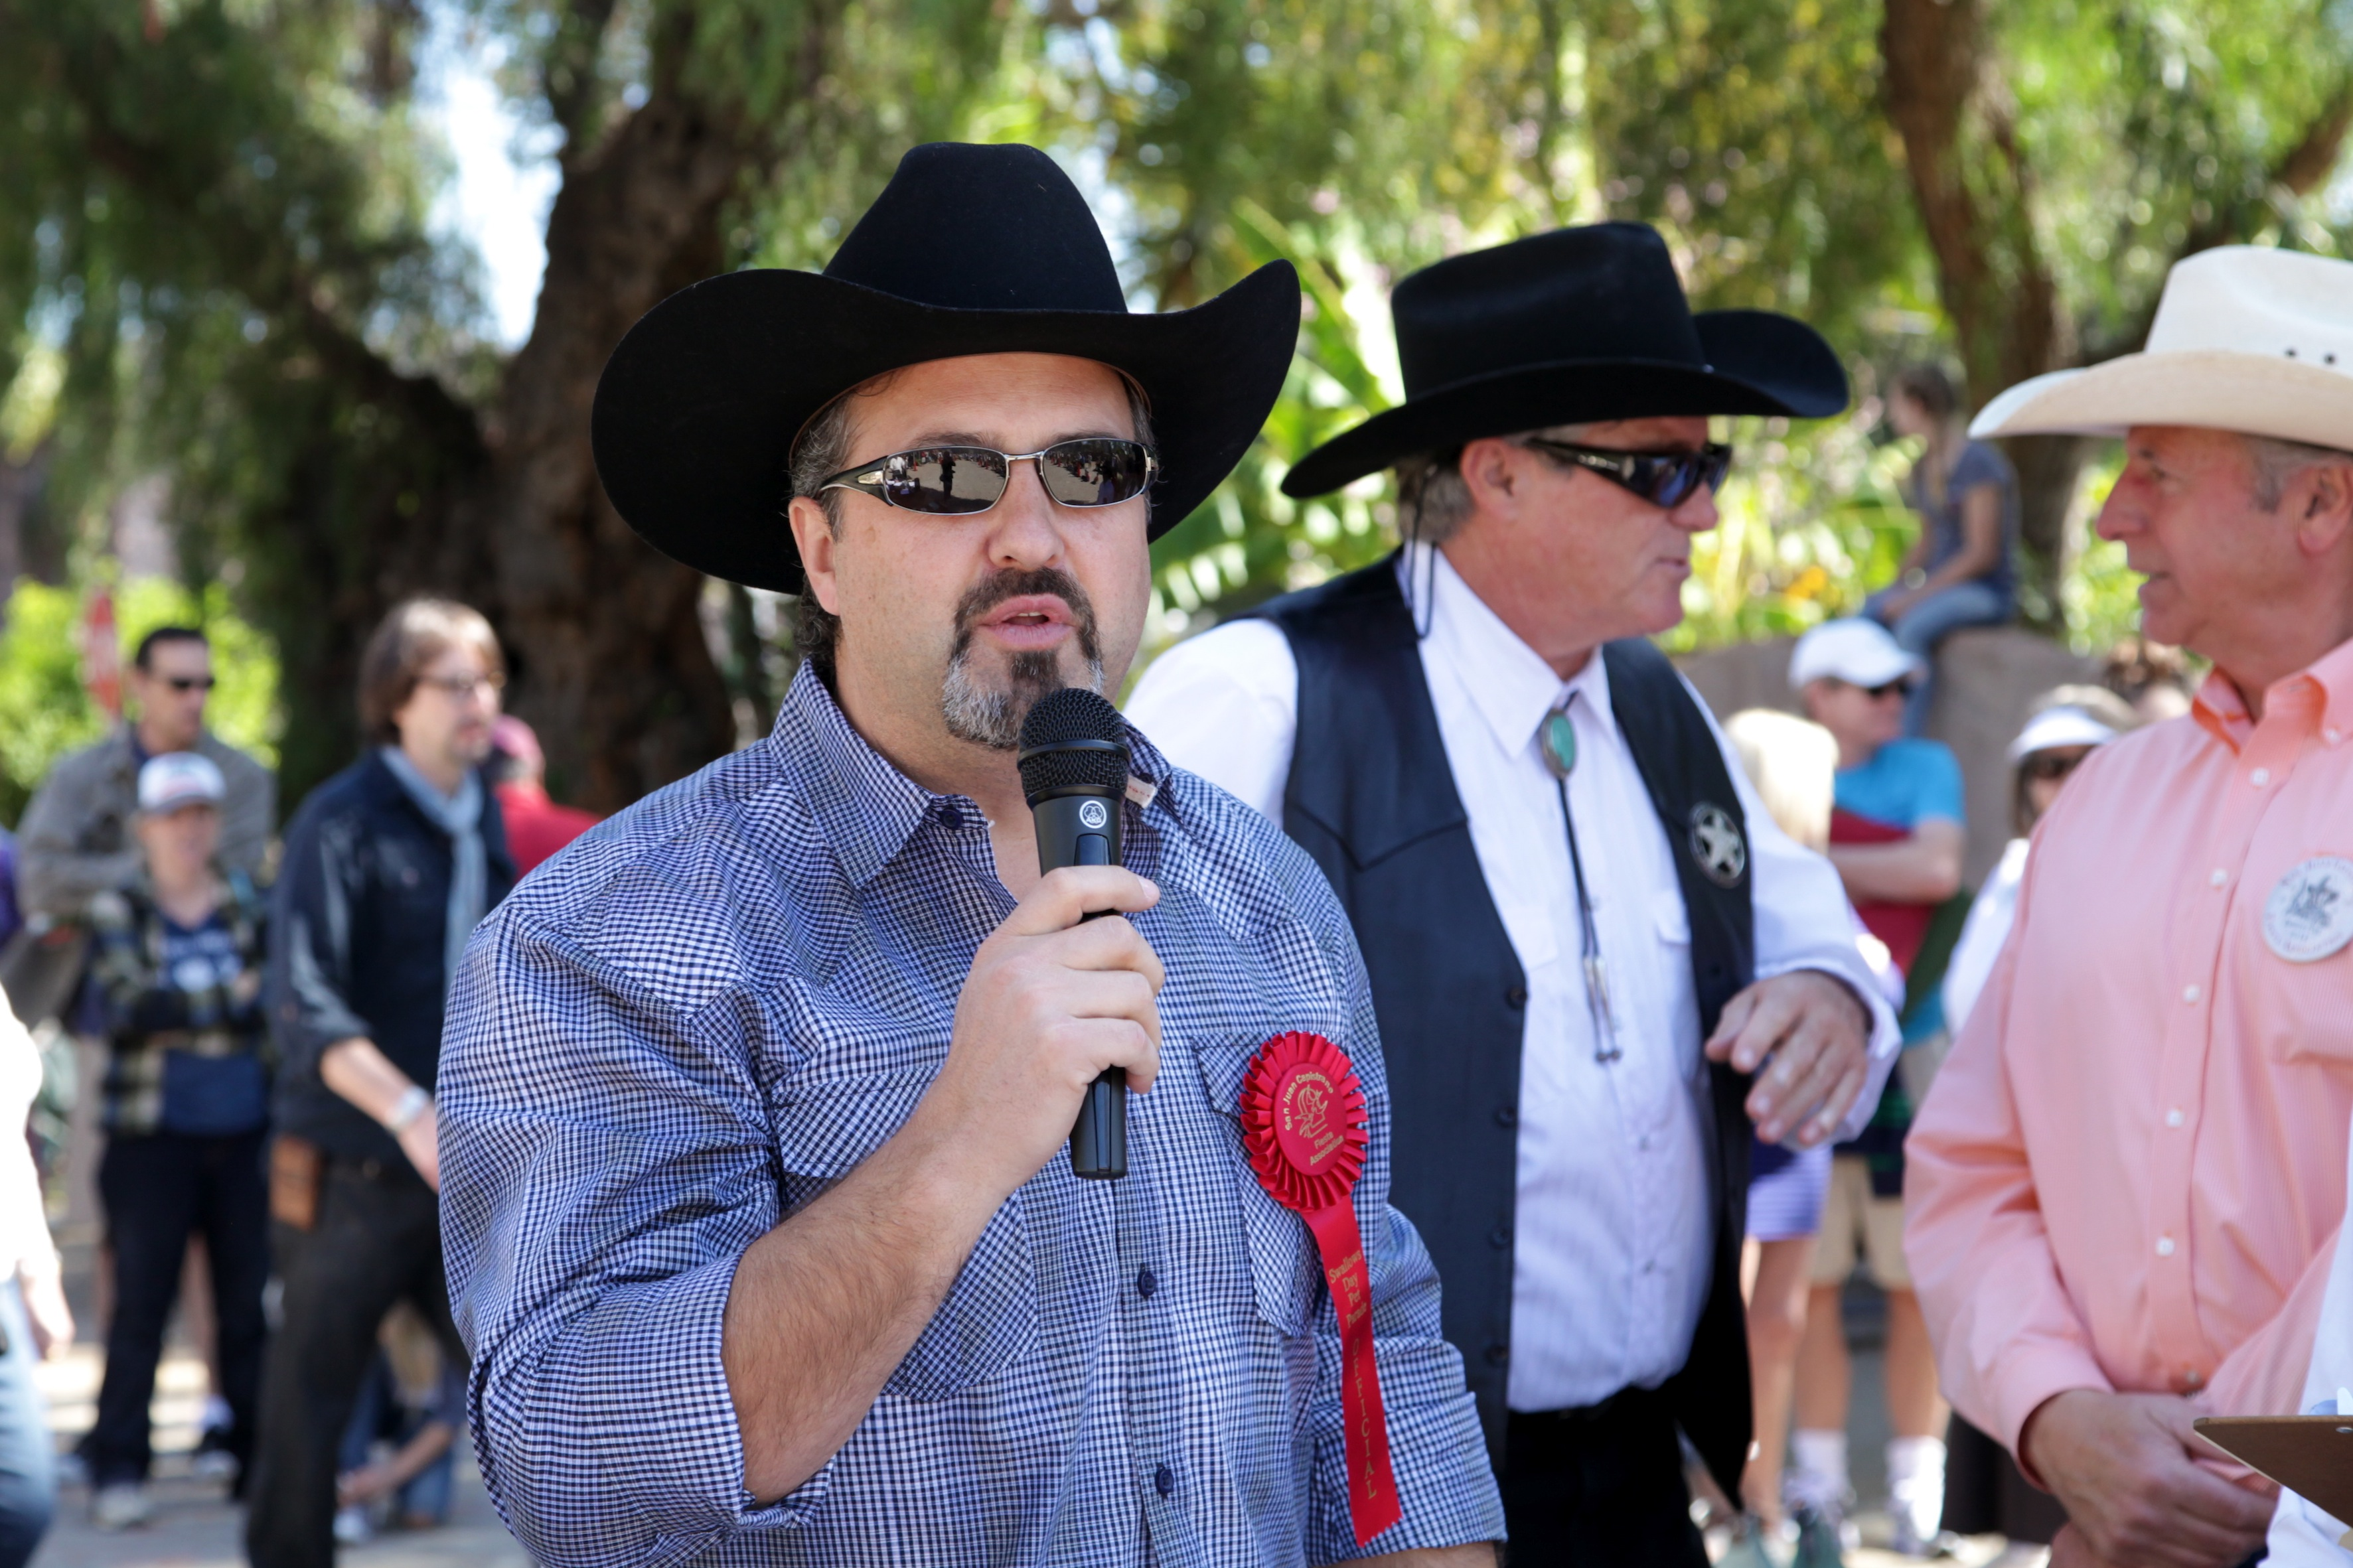 John Gillotti, owner of Mission Grill in San Juan Capistrano, served as a judge for the Kids Pet Parade for the second straight year. Photo by Brian Park